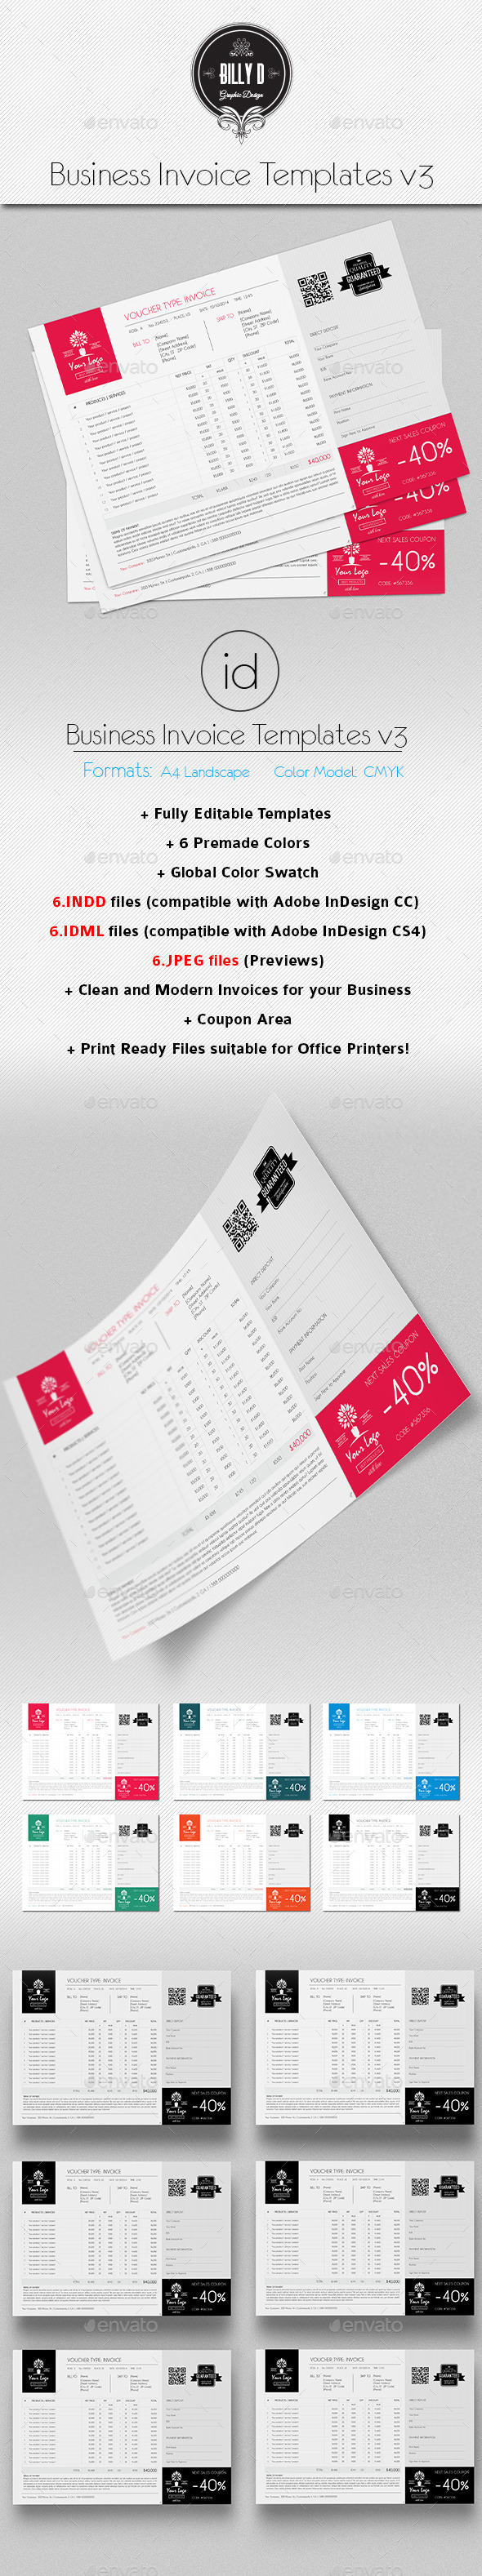 GraphicRiver Business Invoice Templates v3 10102342